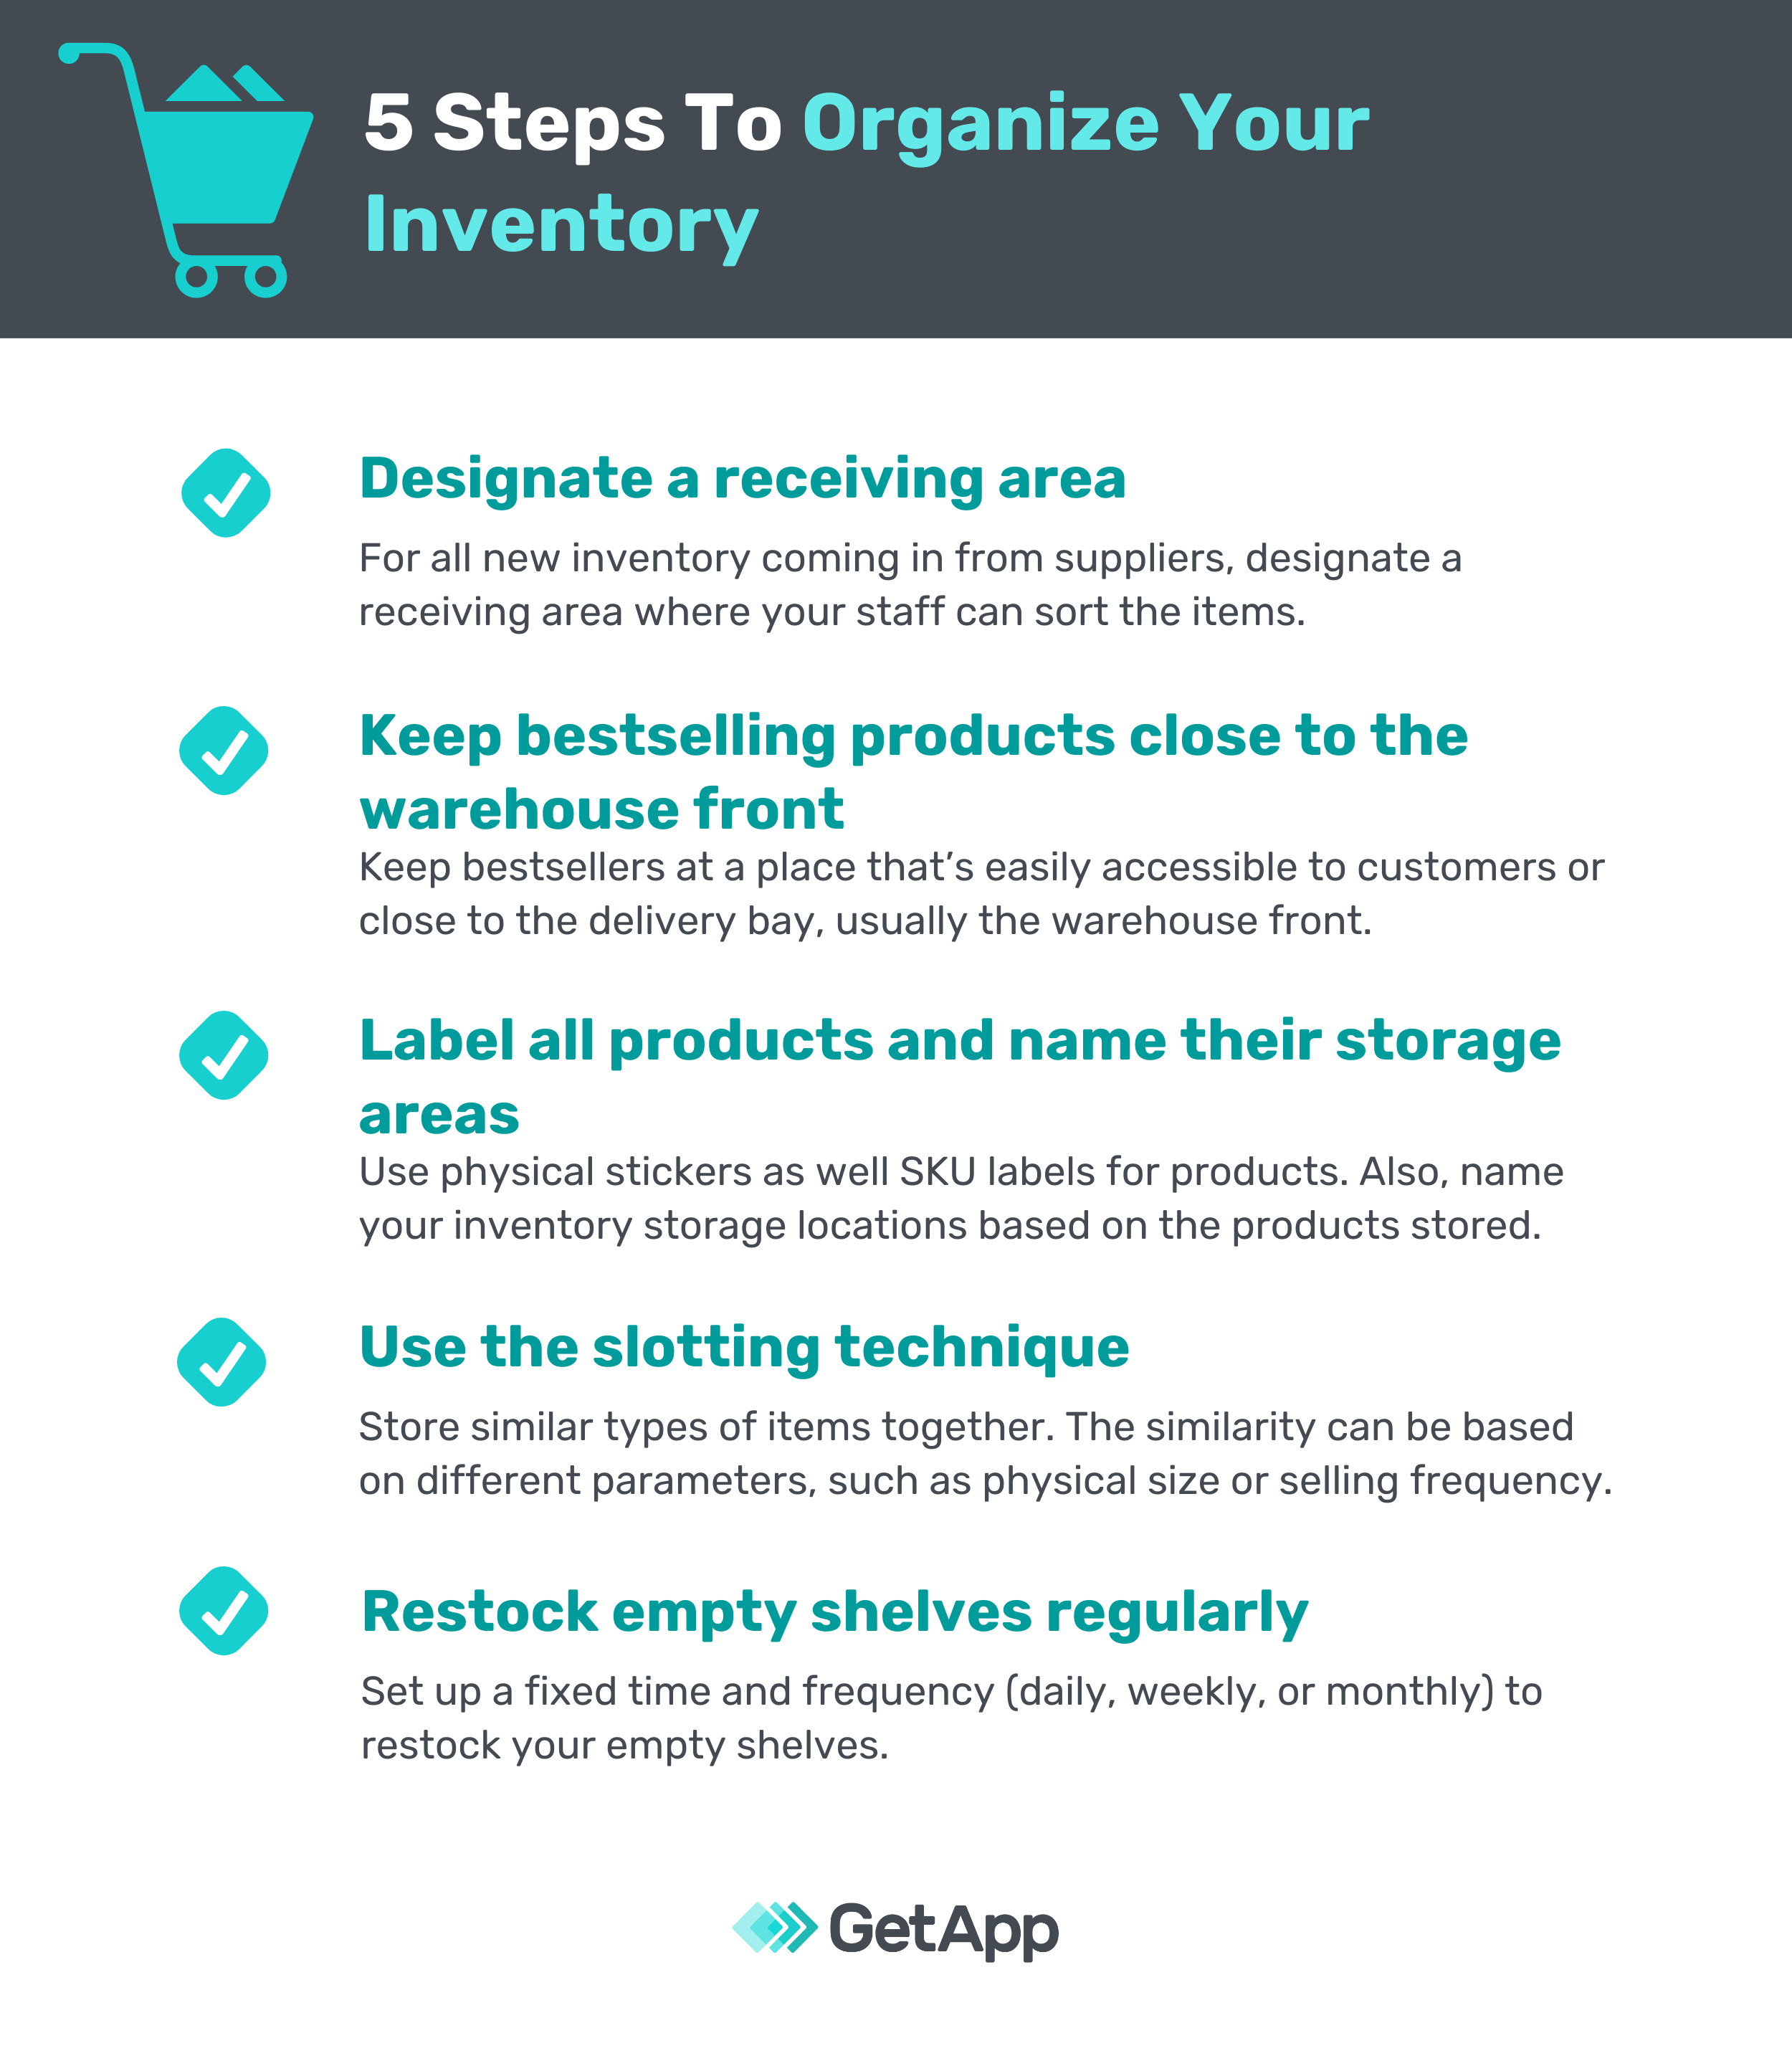 5 steps to organize your warehouse inventory